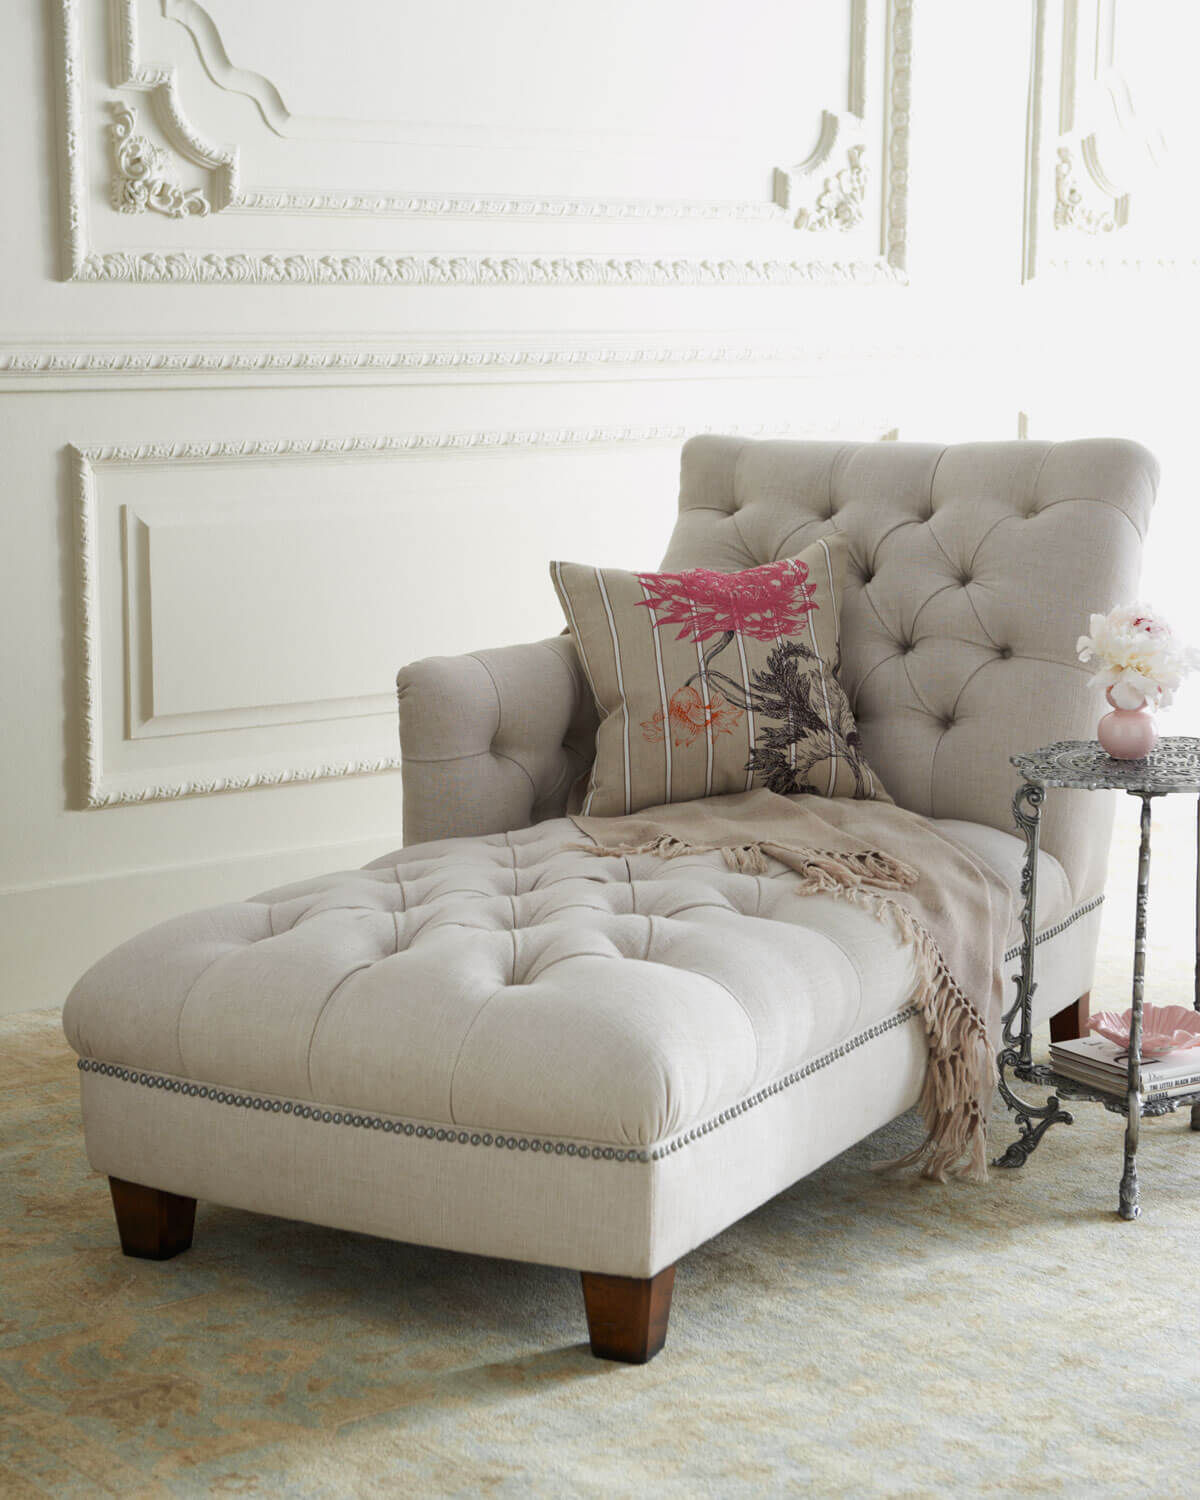 Bedroom Chaise Lounges   Foter